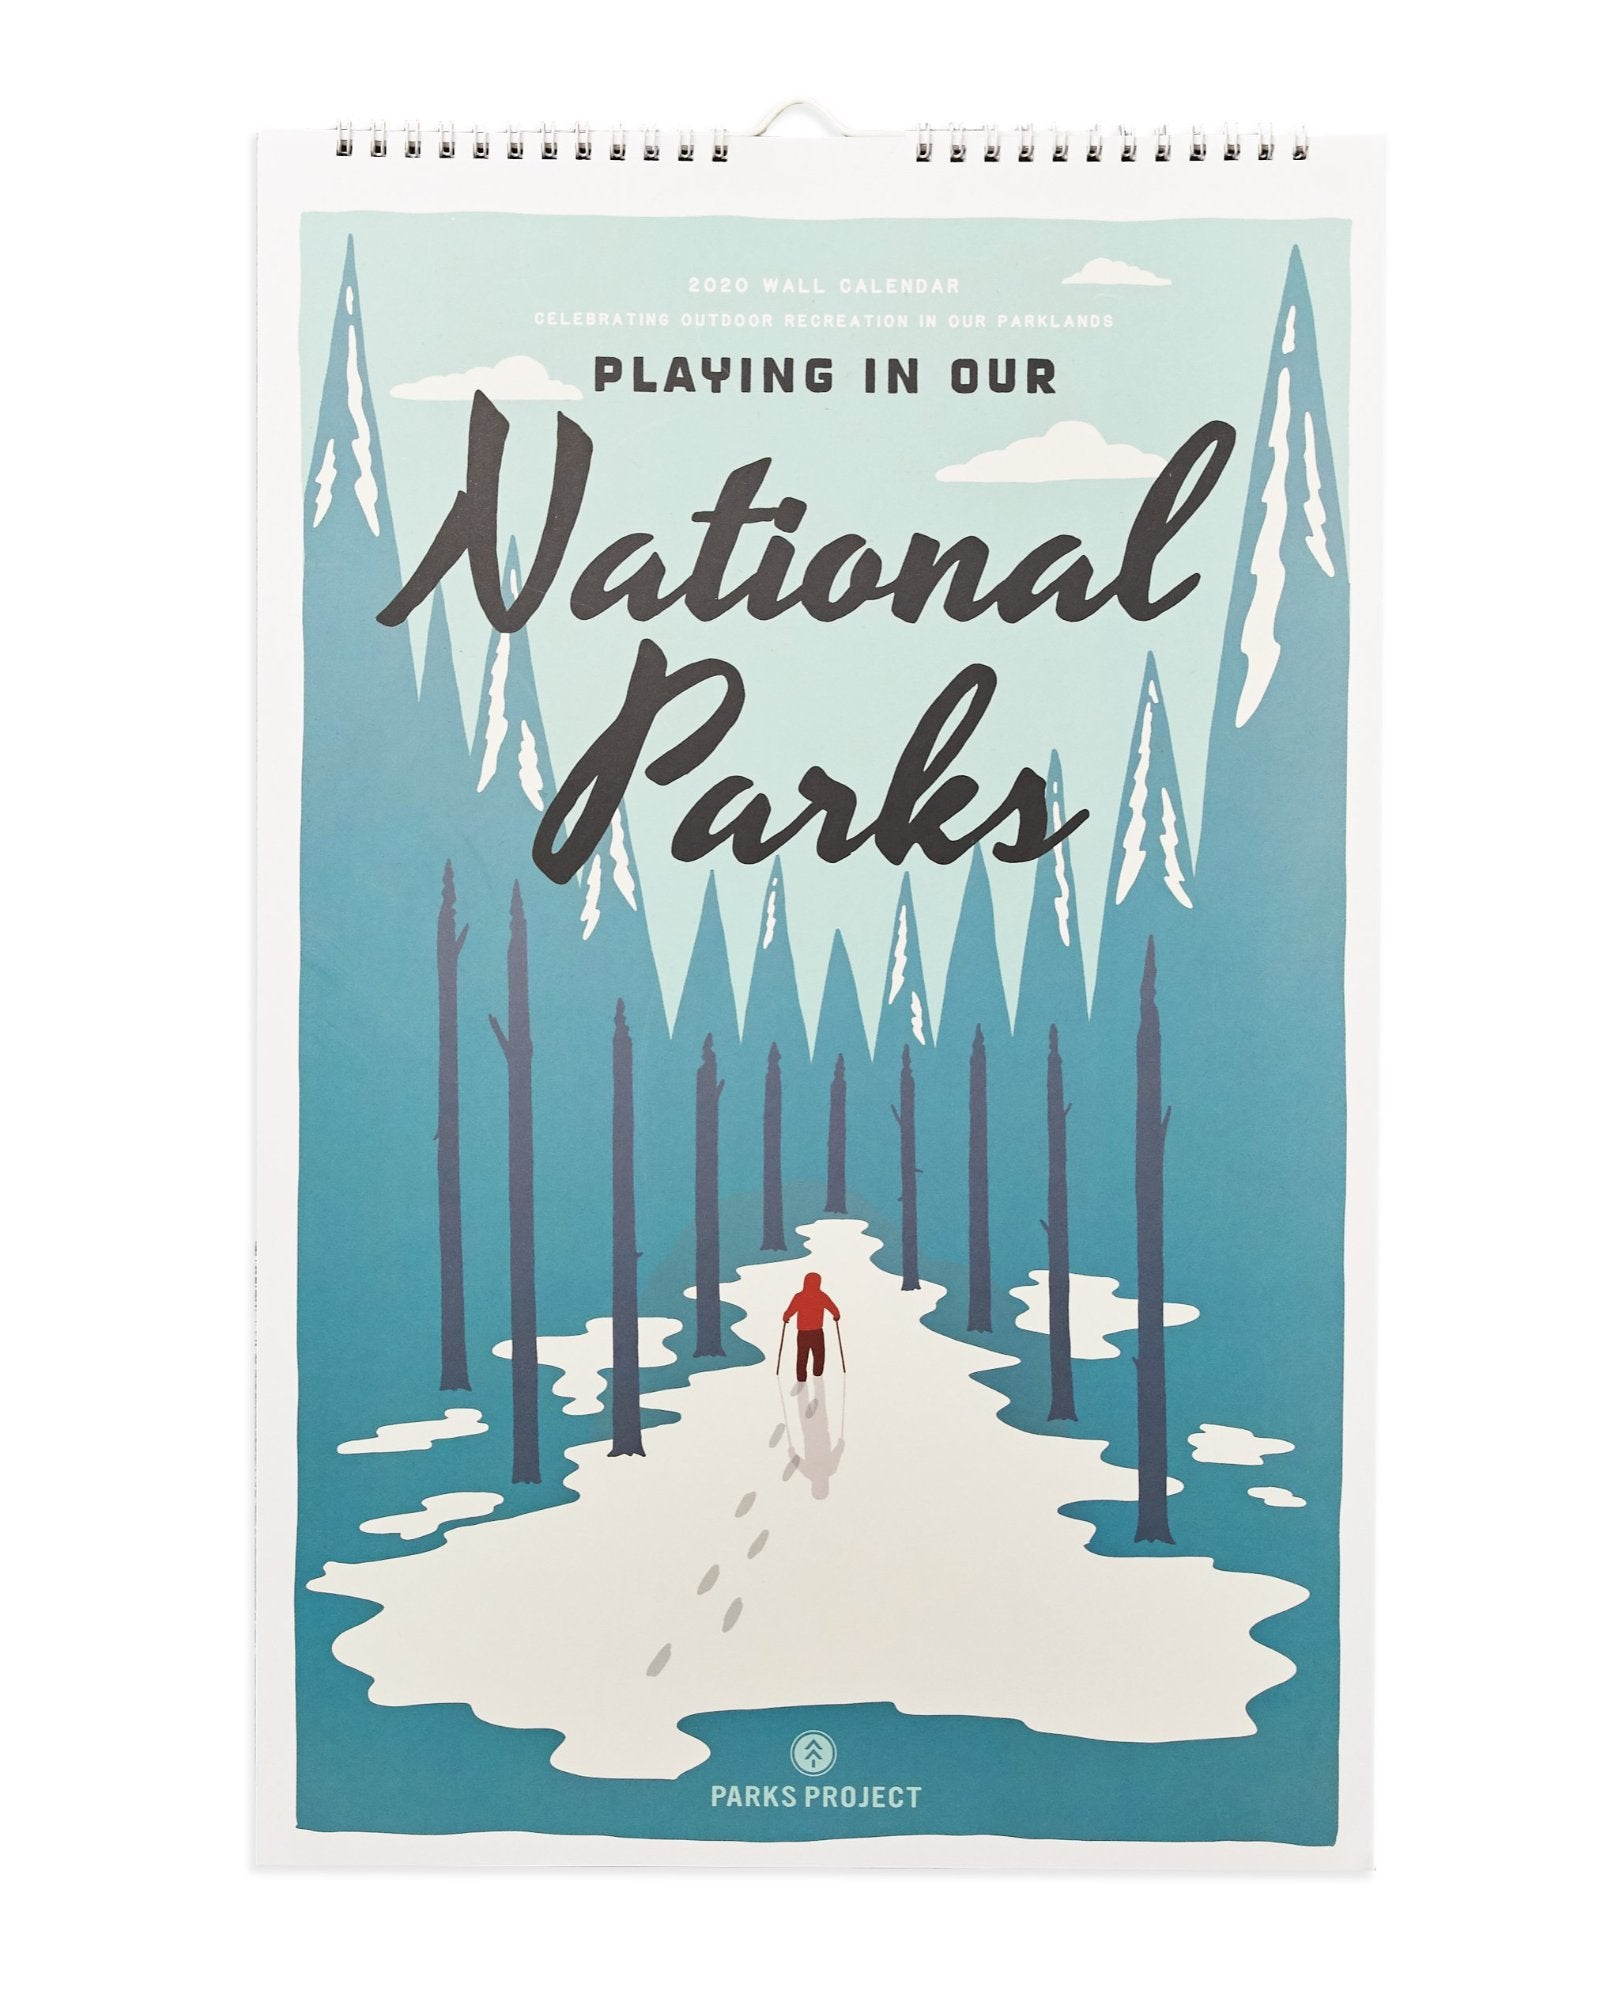 Playing in Our National Parks 2020 Wall Calendar | Parks Project | National Parks Calendar